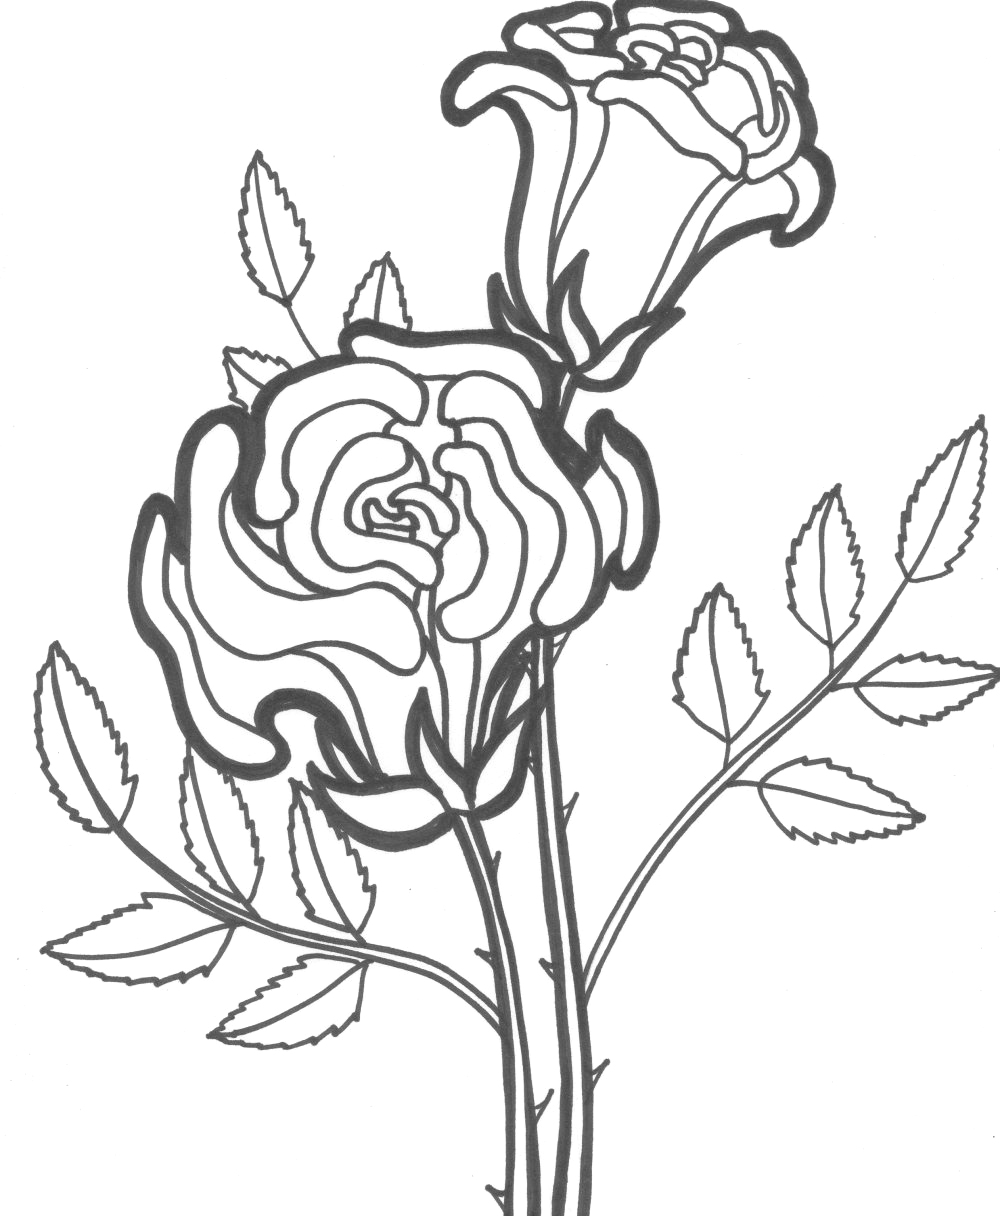 coloring book rose roses coloring pages to download and print for free book rose coloring